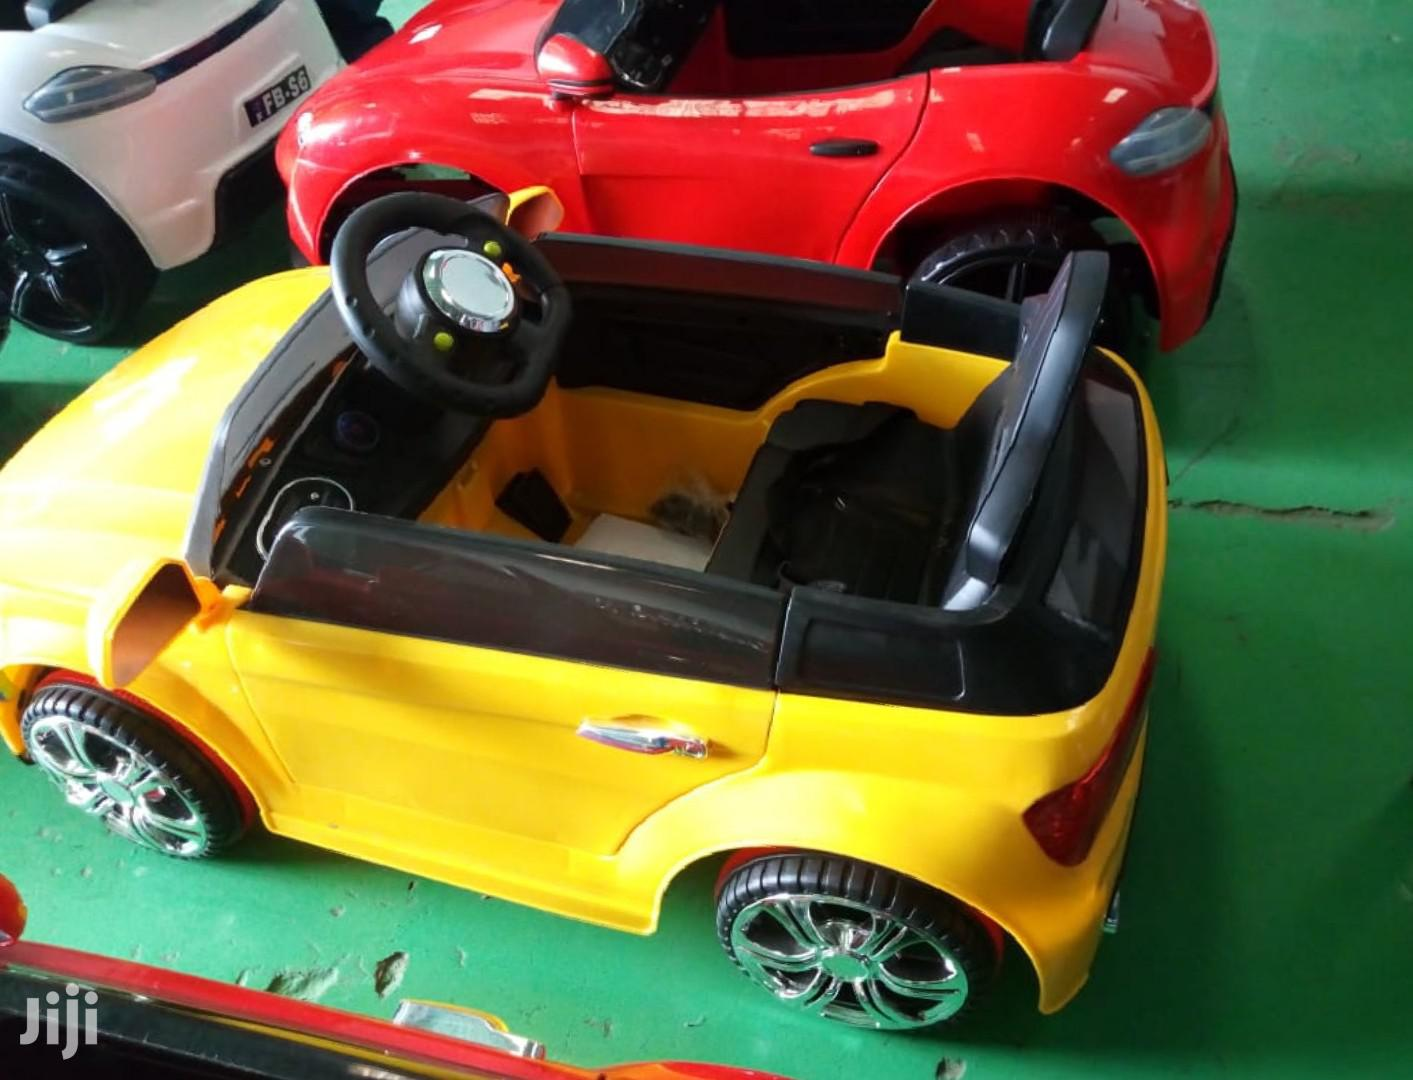 Archive: Kids Drive Toy Cars